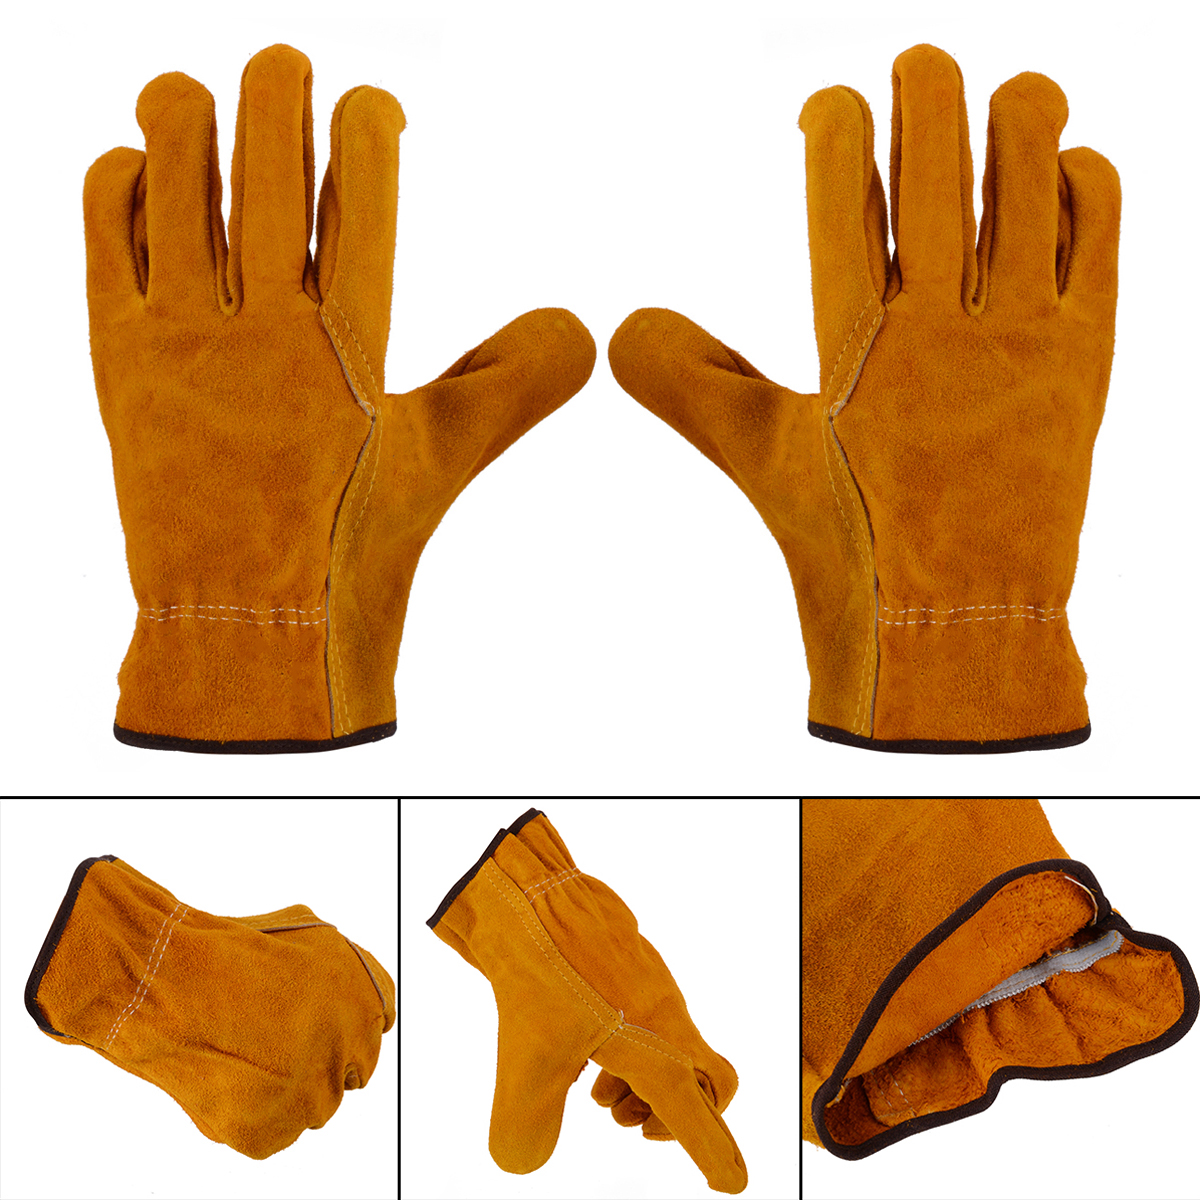 1 Pair Women Men Heavy Duty Gardening Gloves Thorn Proof Cowhide Leather Safety Working Gloves For Hand Protection